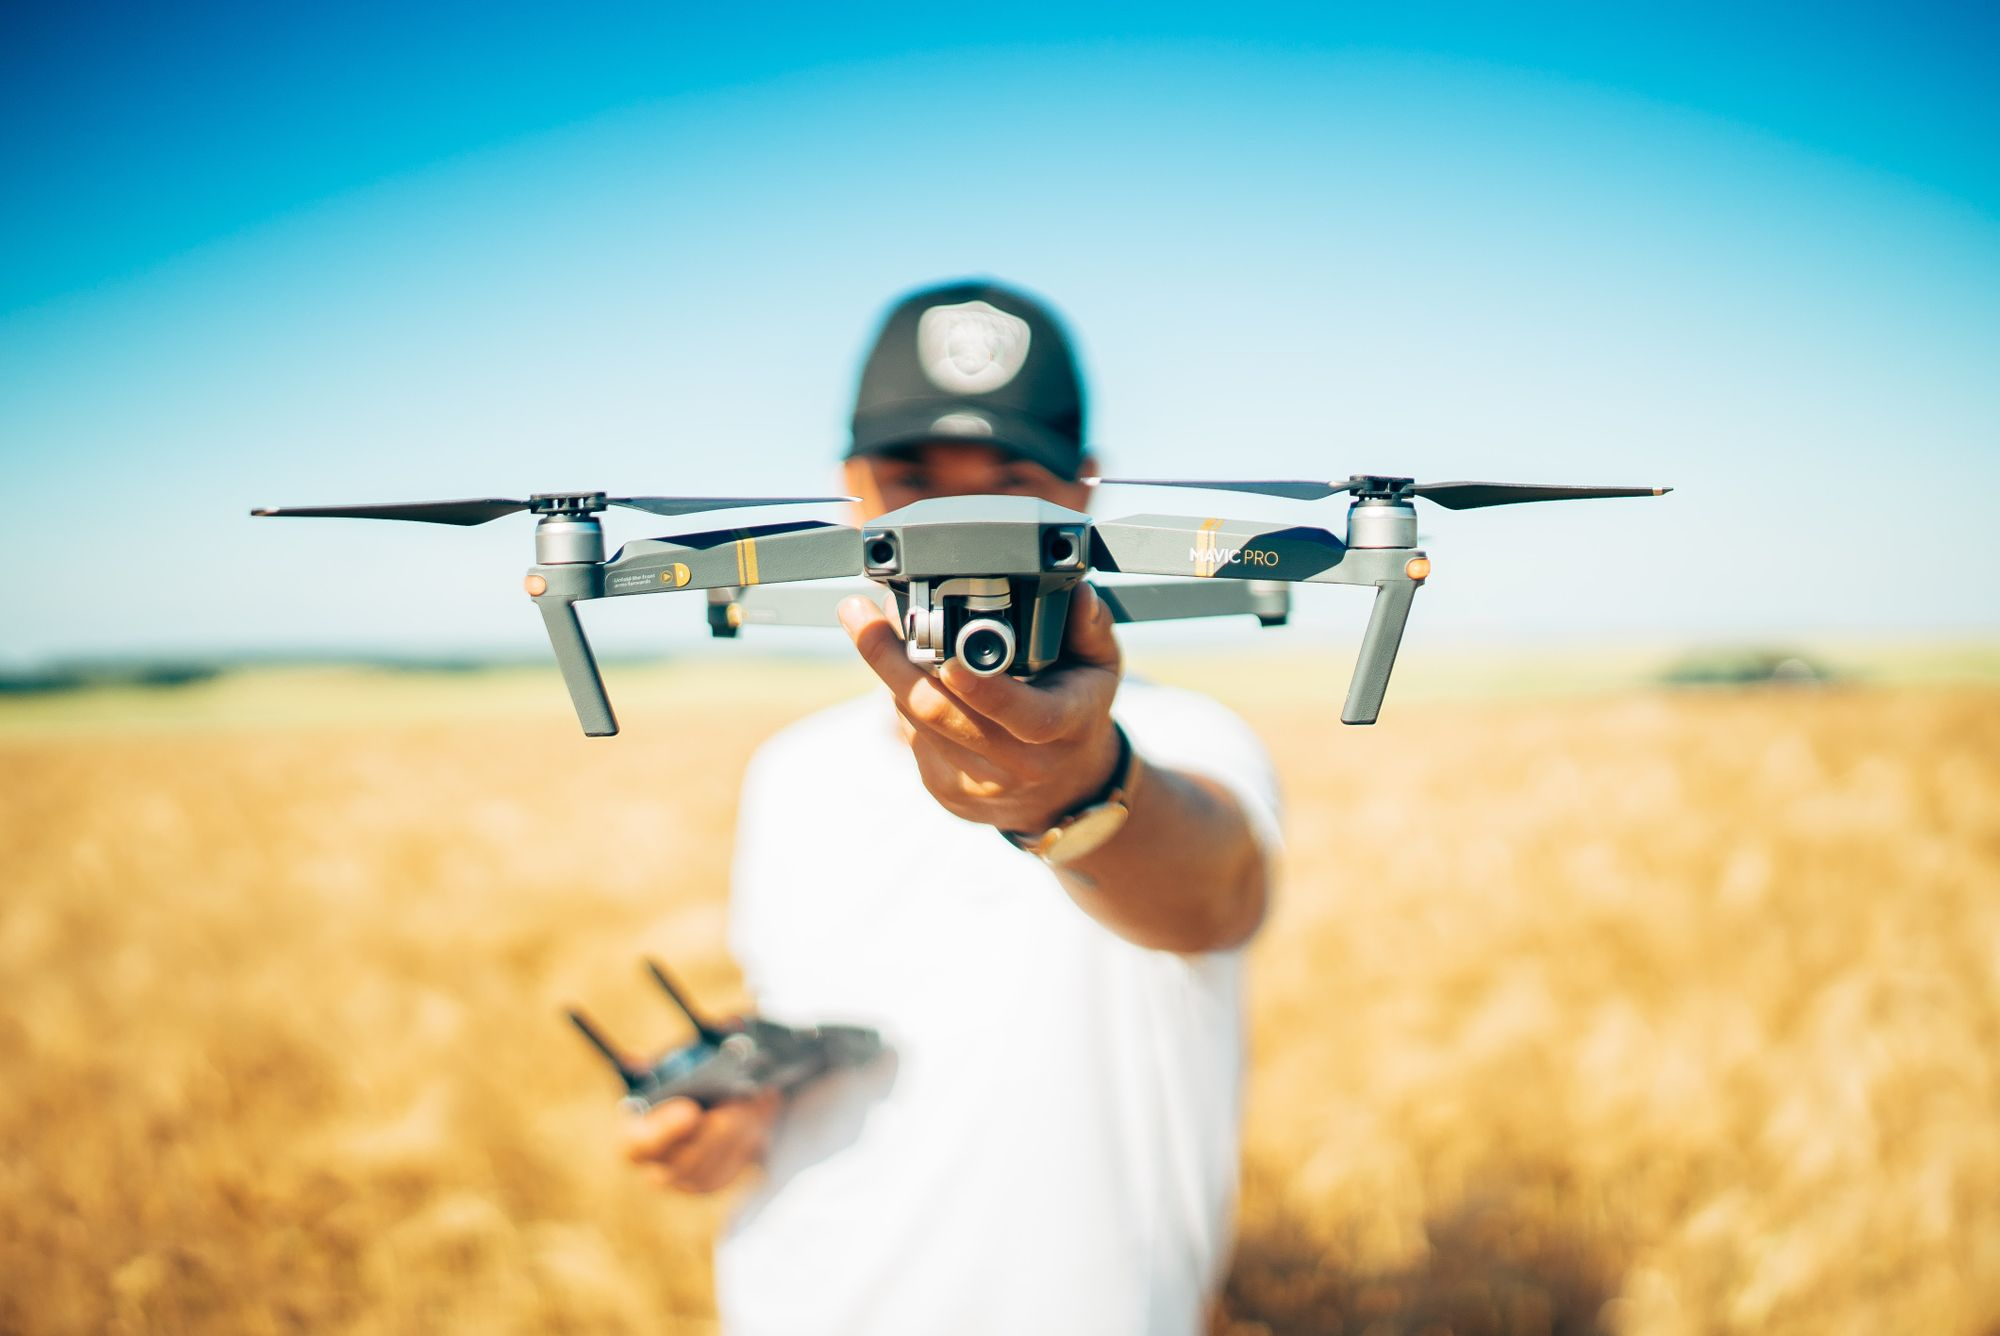 Needed skills for a drone operator